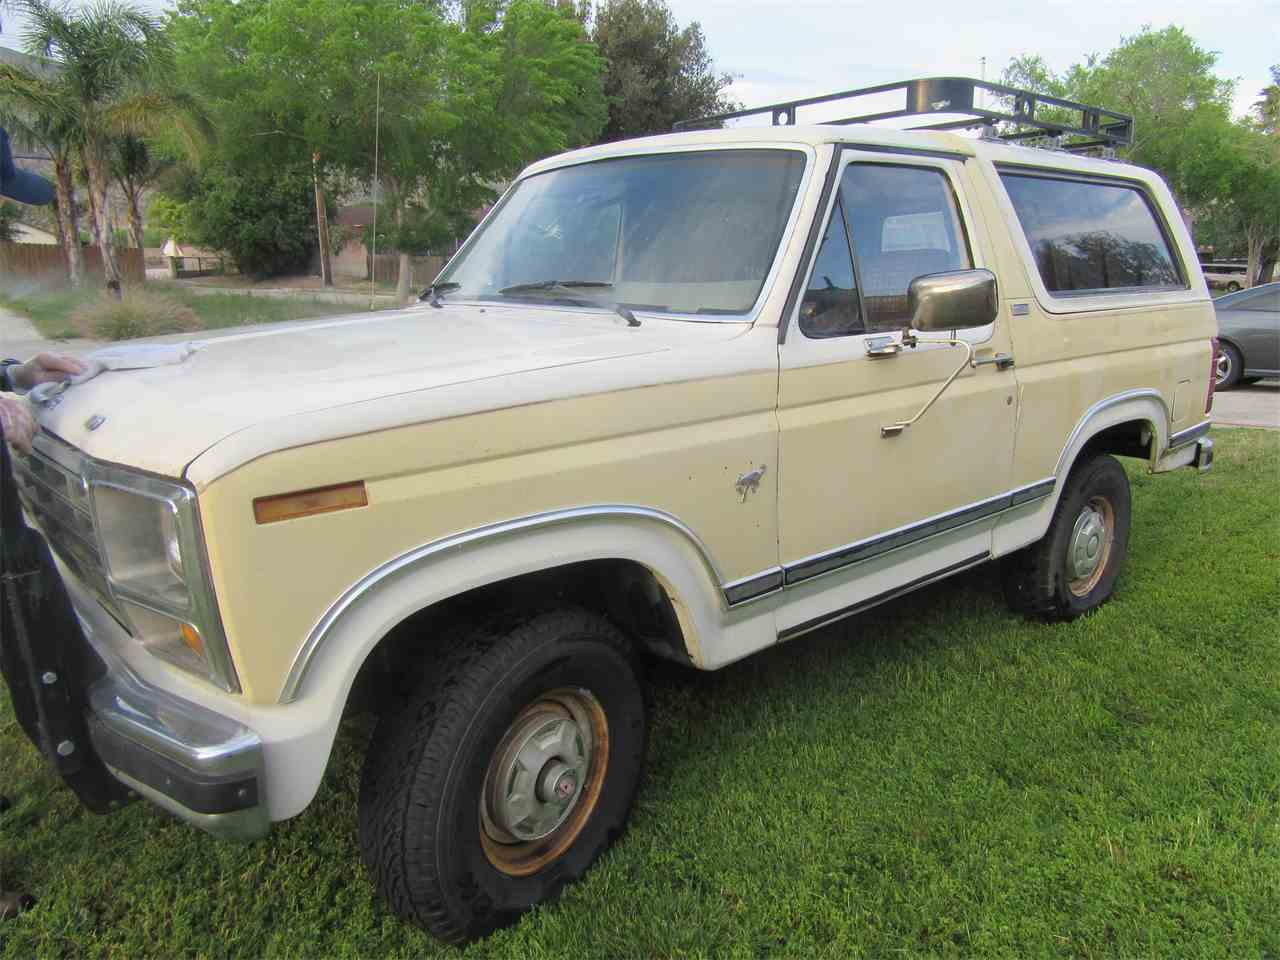 Large Picture of 1981 Ford Bronco - $16,000.00 Offered by a Private Seller - N5DO